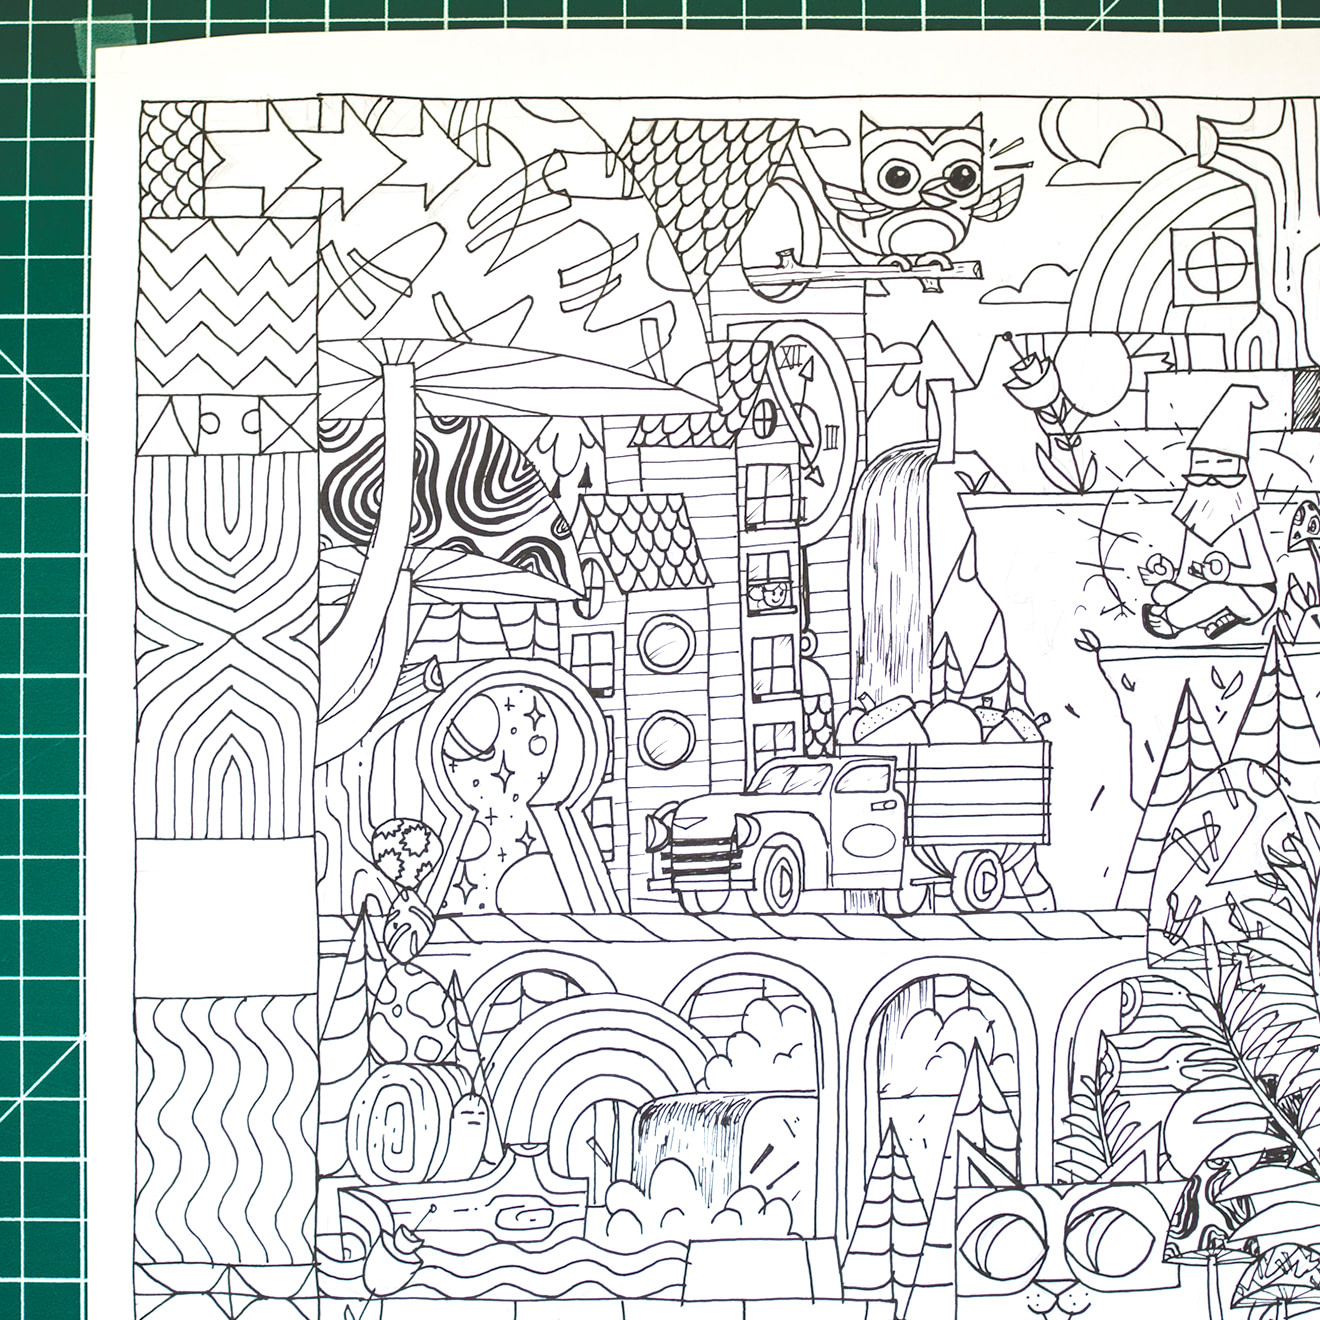 Black and white outline of a fantastical scene depicting mushrooms, snails, a waterfall, a gnome, acorns and trees.